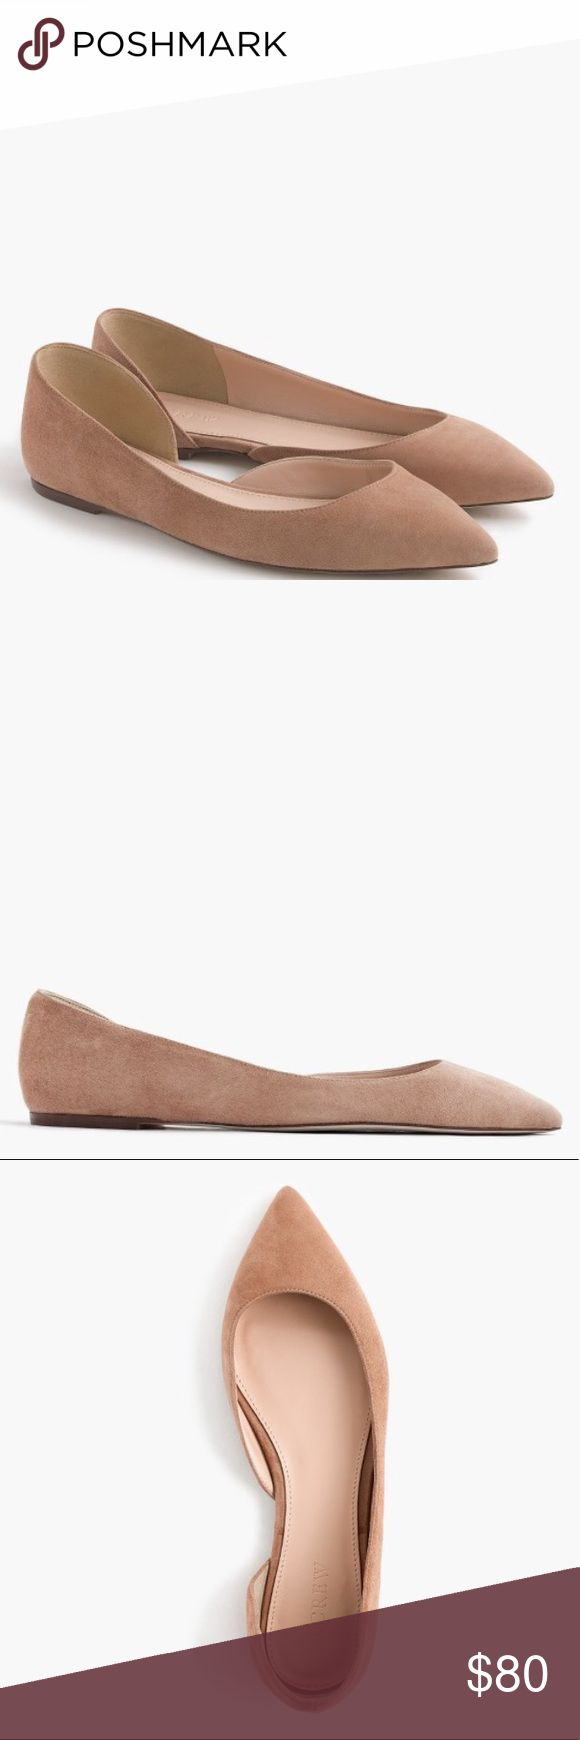 J. Crew Audrey Flat in Suede NIB J. Crew Audrey Flat in Suede.  Size 5 in Ashen, beautiful taupe color that goes with everything.  This is definitely an everyday shoe!  Brand new and in perfect condition.  These run a little large and would best for a 5.5 or 6. J. Crew Shoes Flats & Loafers